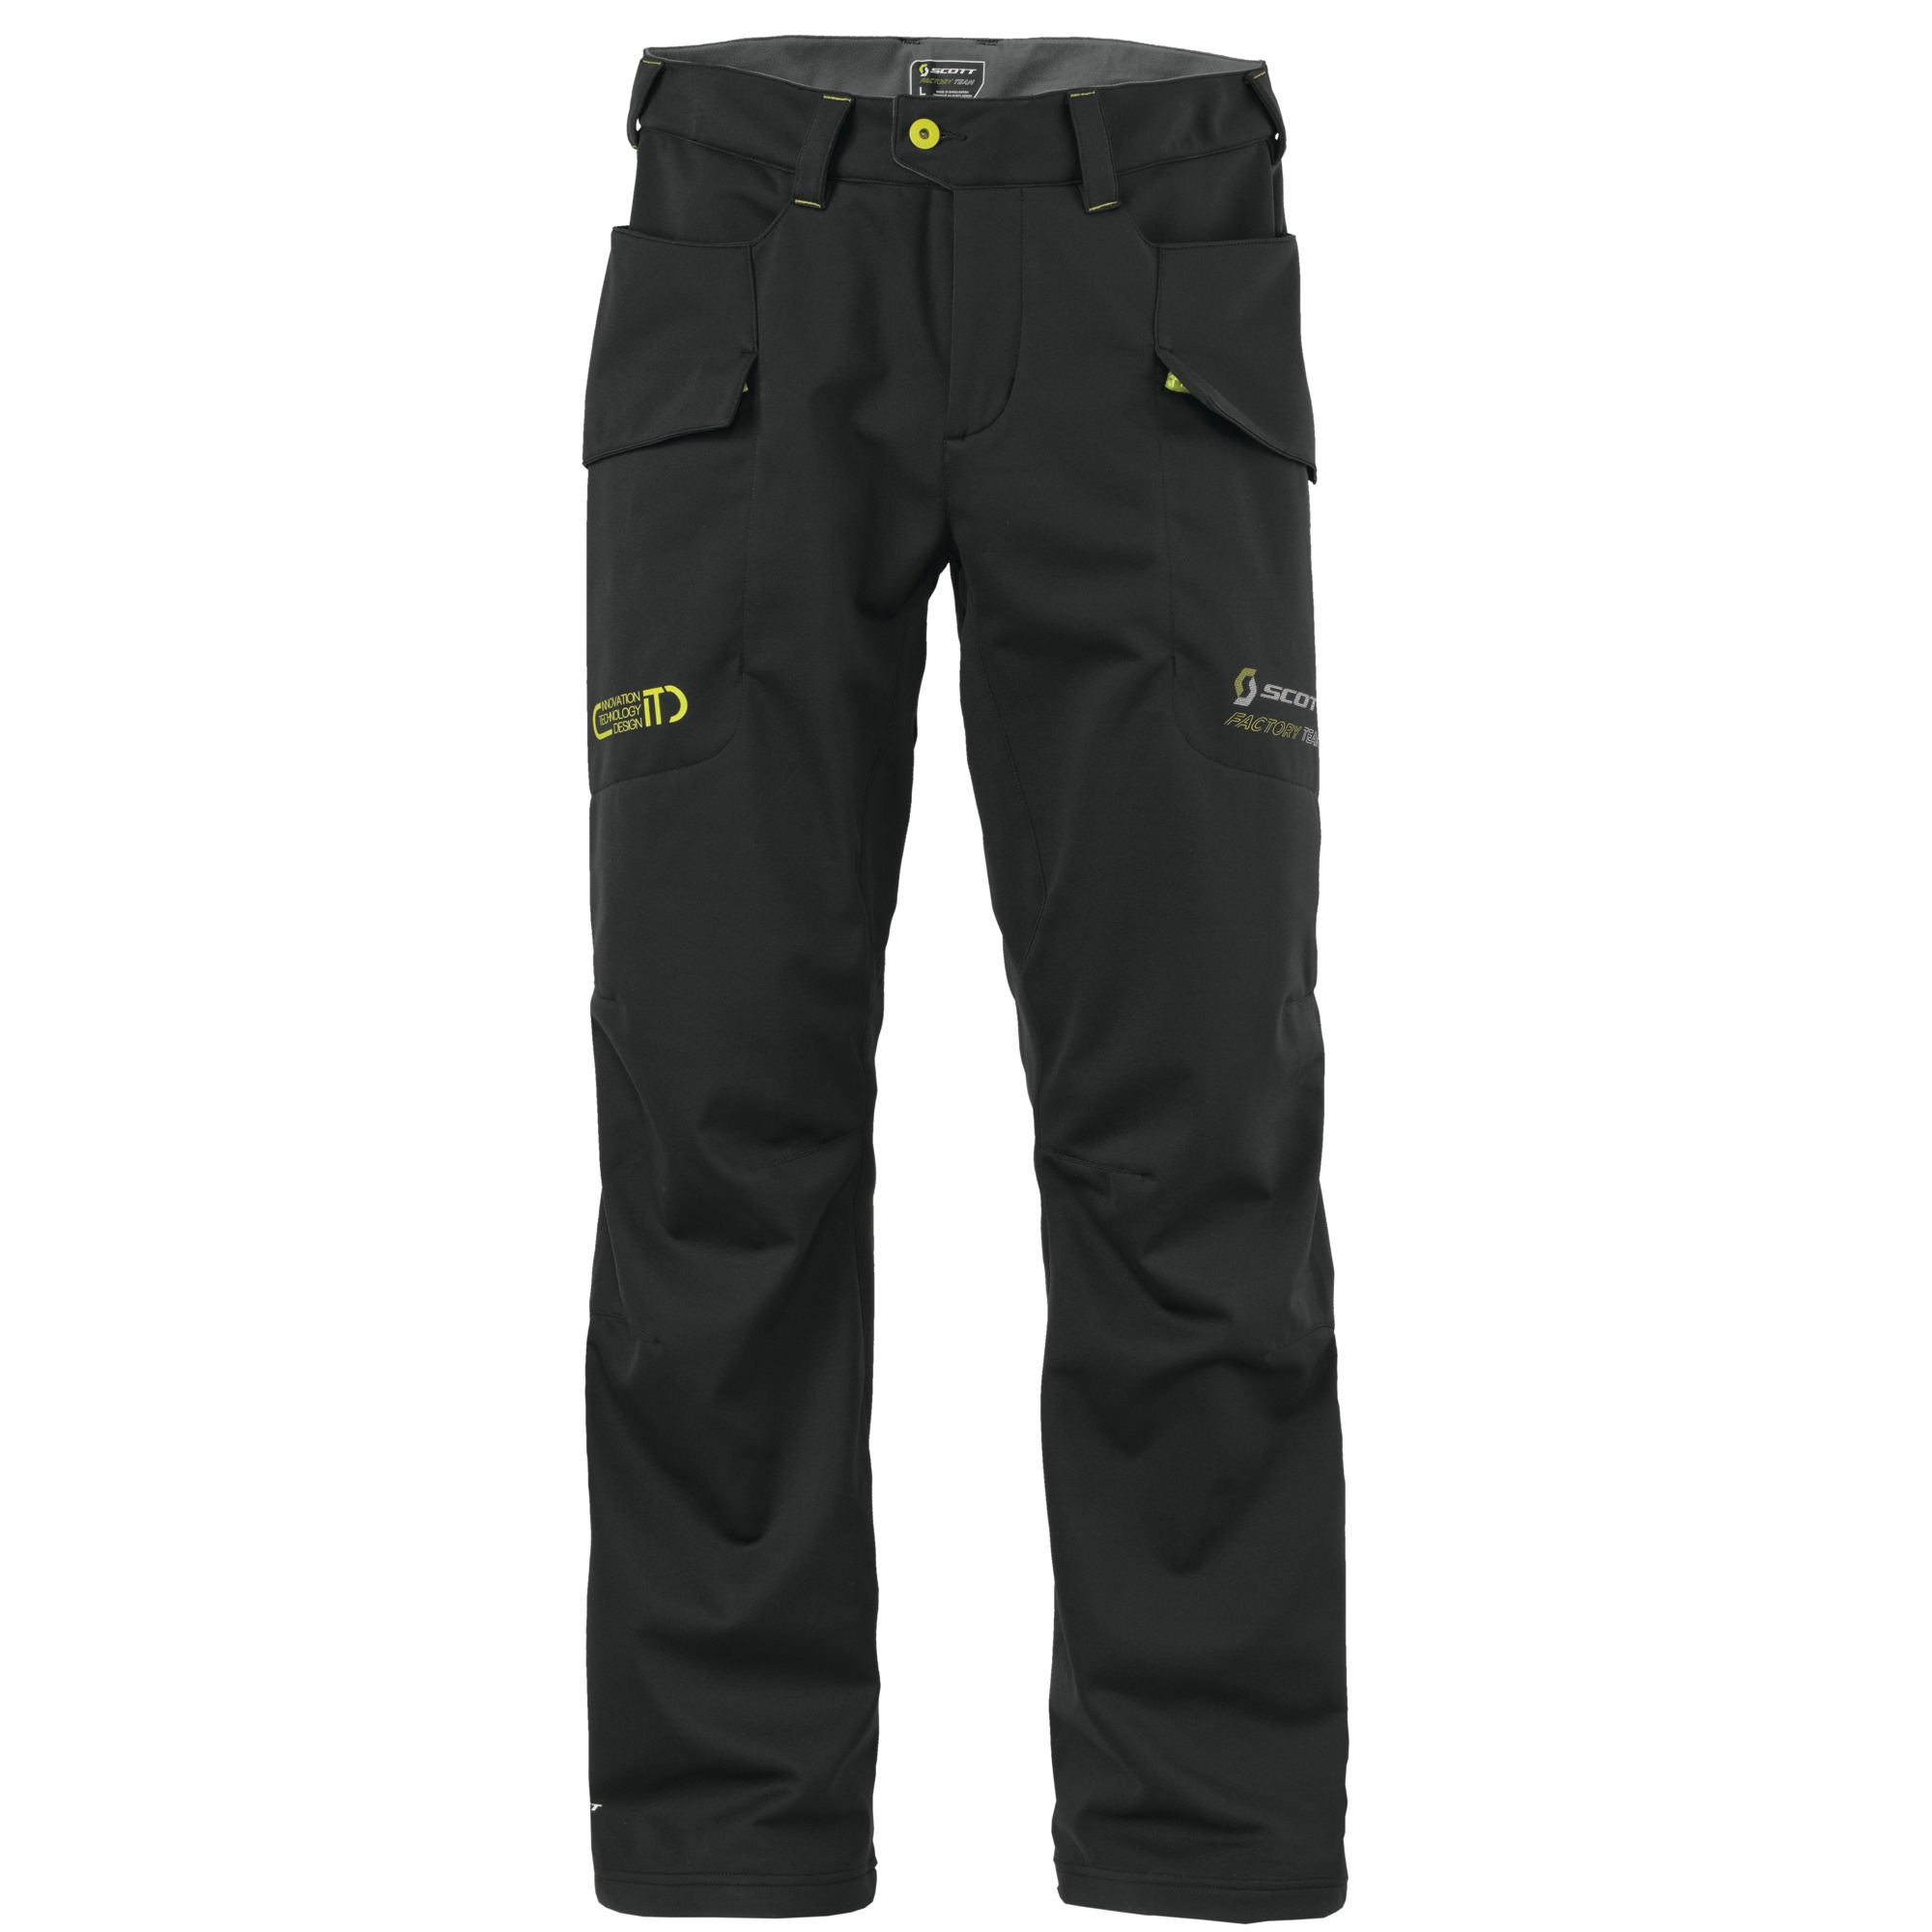 Pants Factory Team Softshell